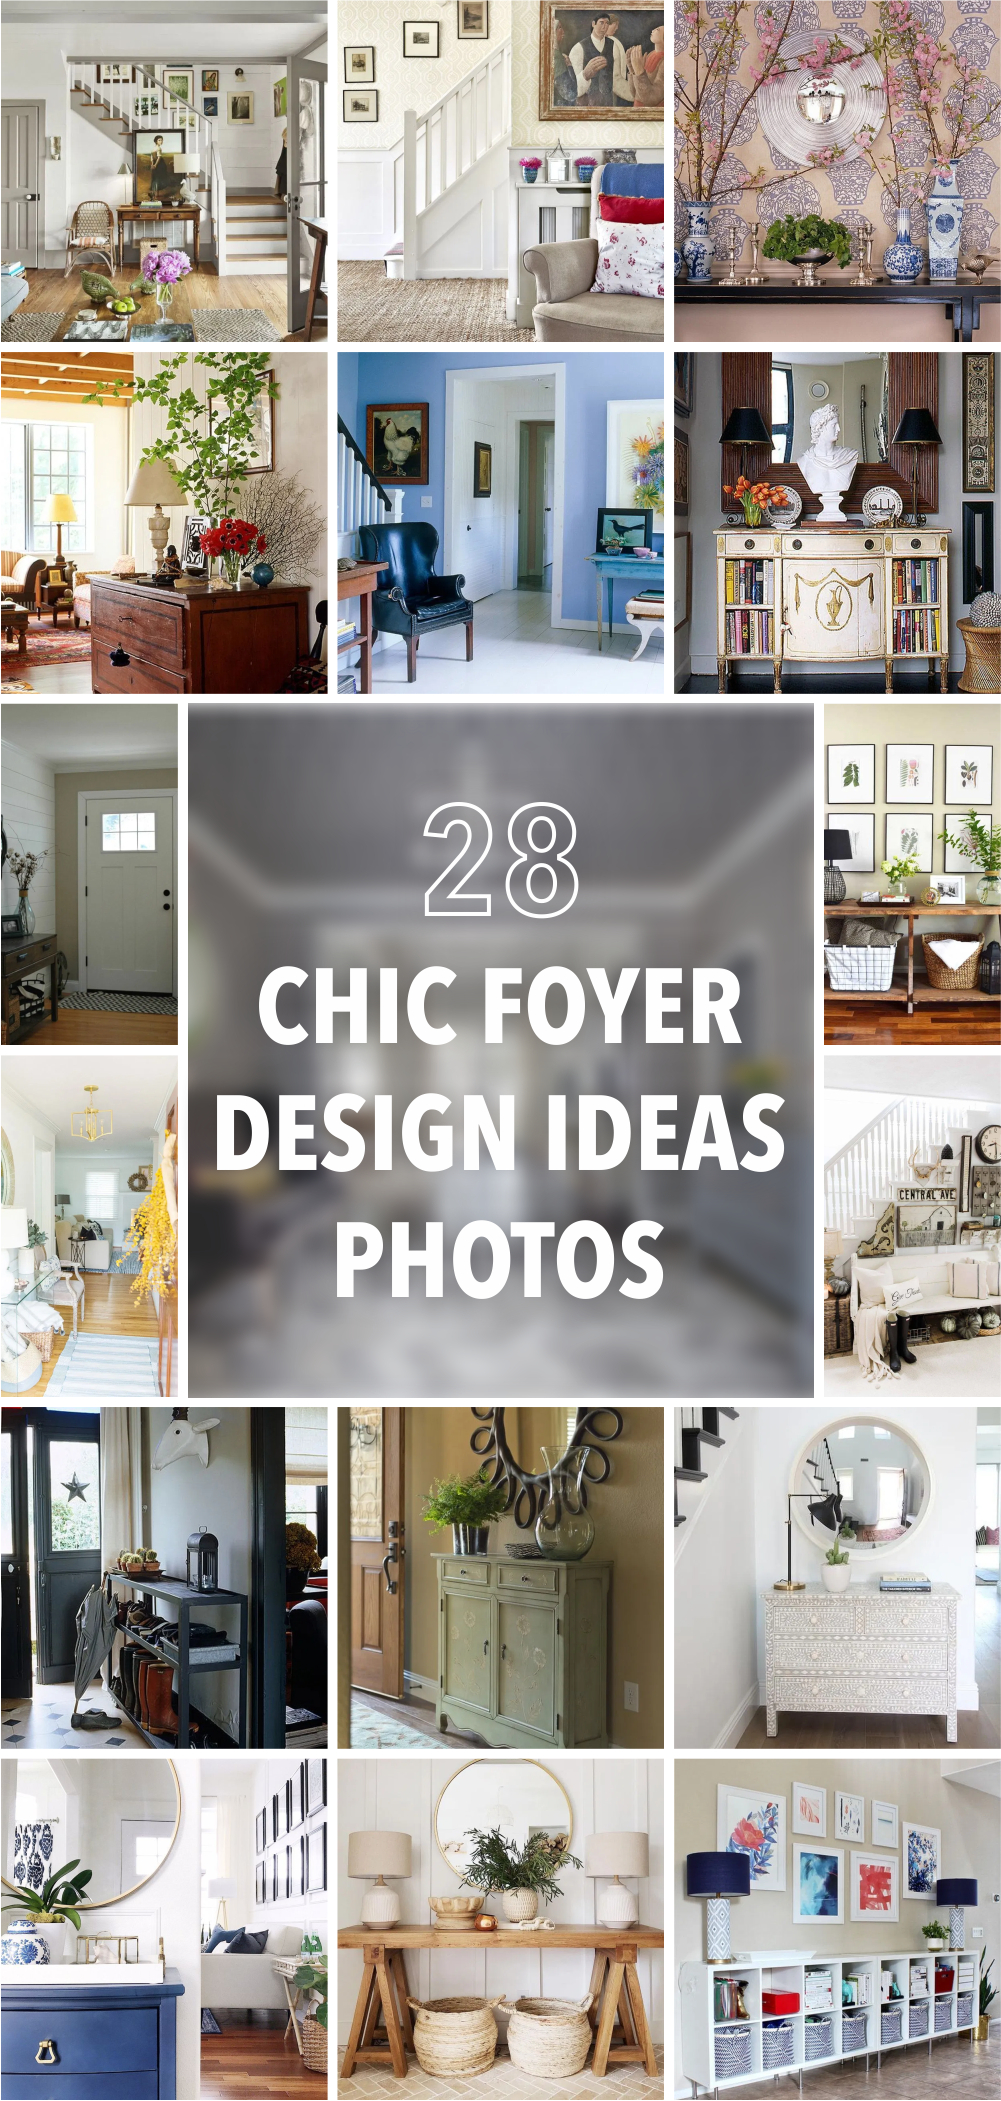 28 chic foyer design ideas photos 1